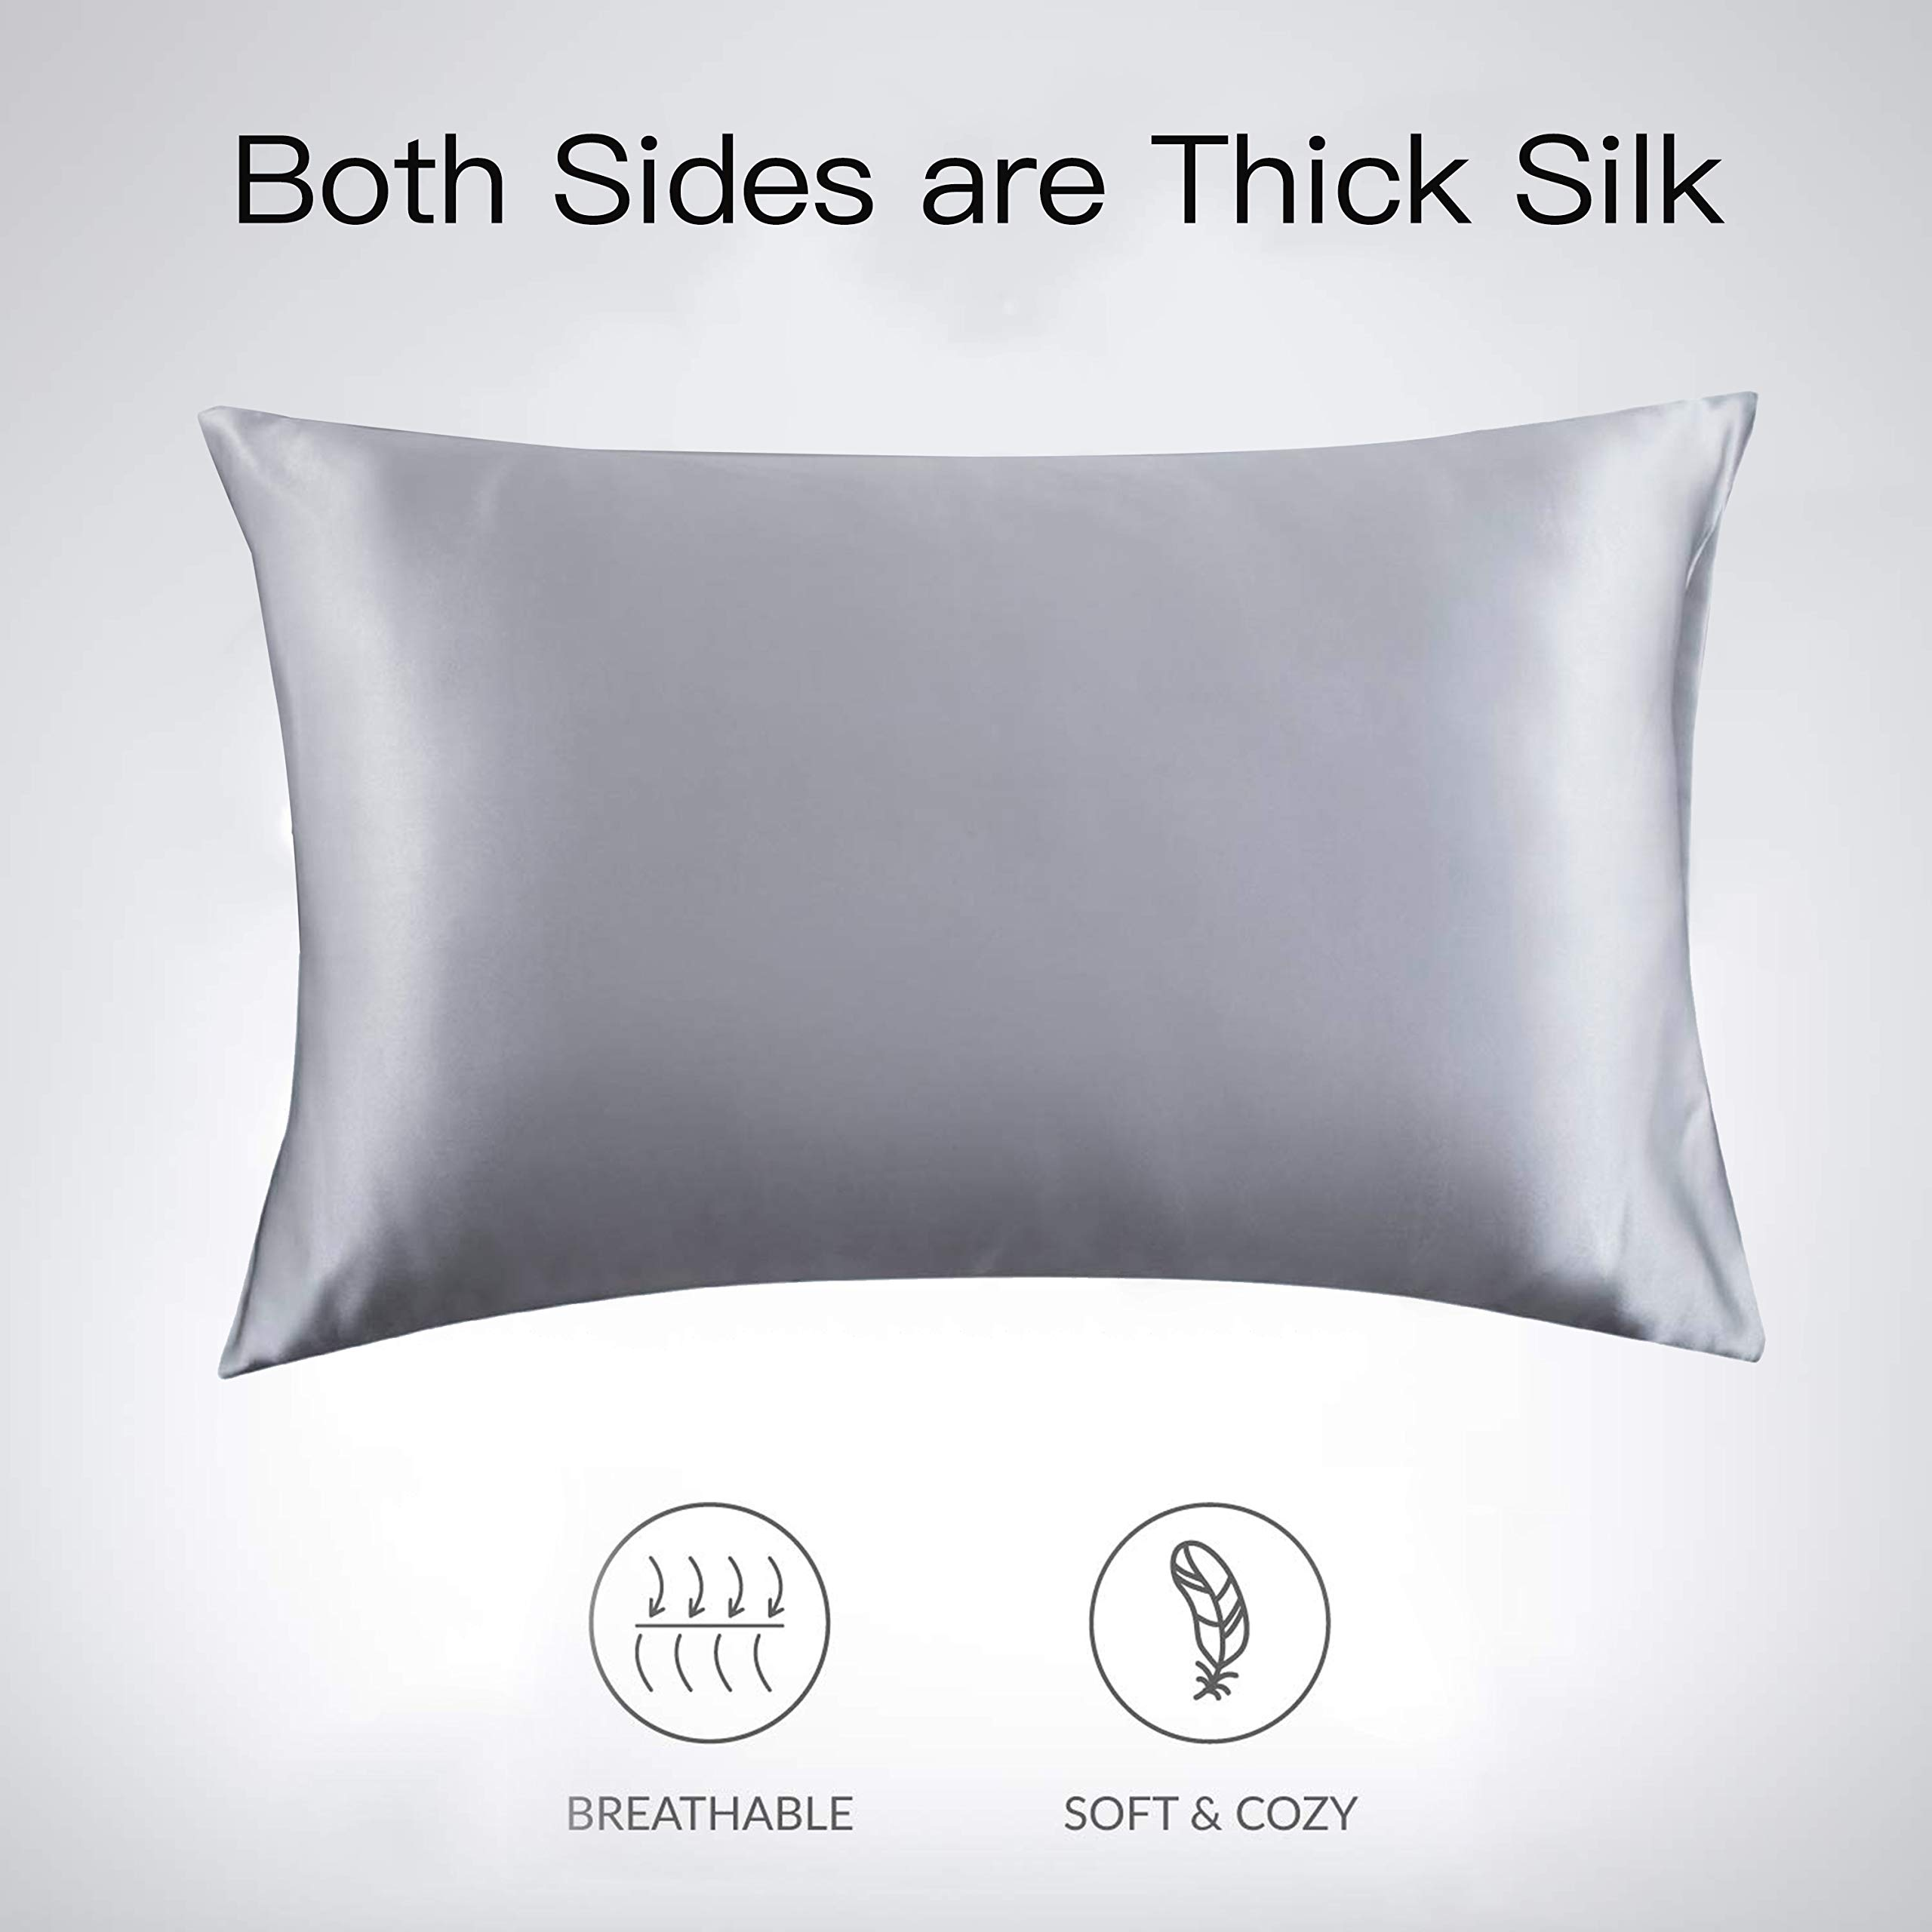 ZHOUBIN Soft-Silky Natural Silk Pillowcases with Both Sides Luxurious 25 Momme Silk and Hidden Zippered for Hair and Skin(1 Pack,20×30\